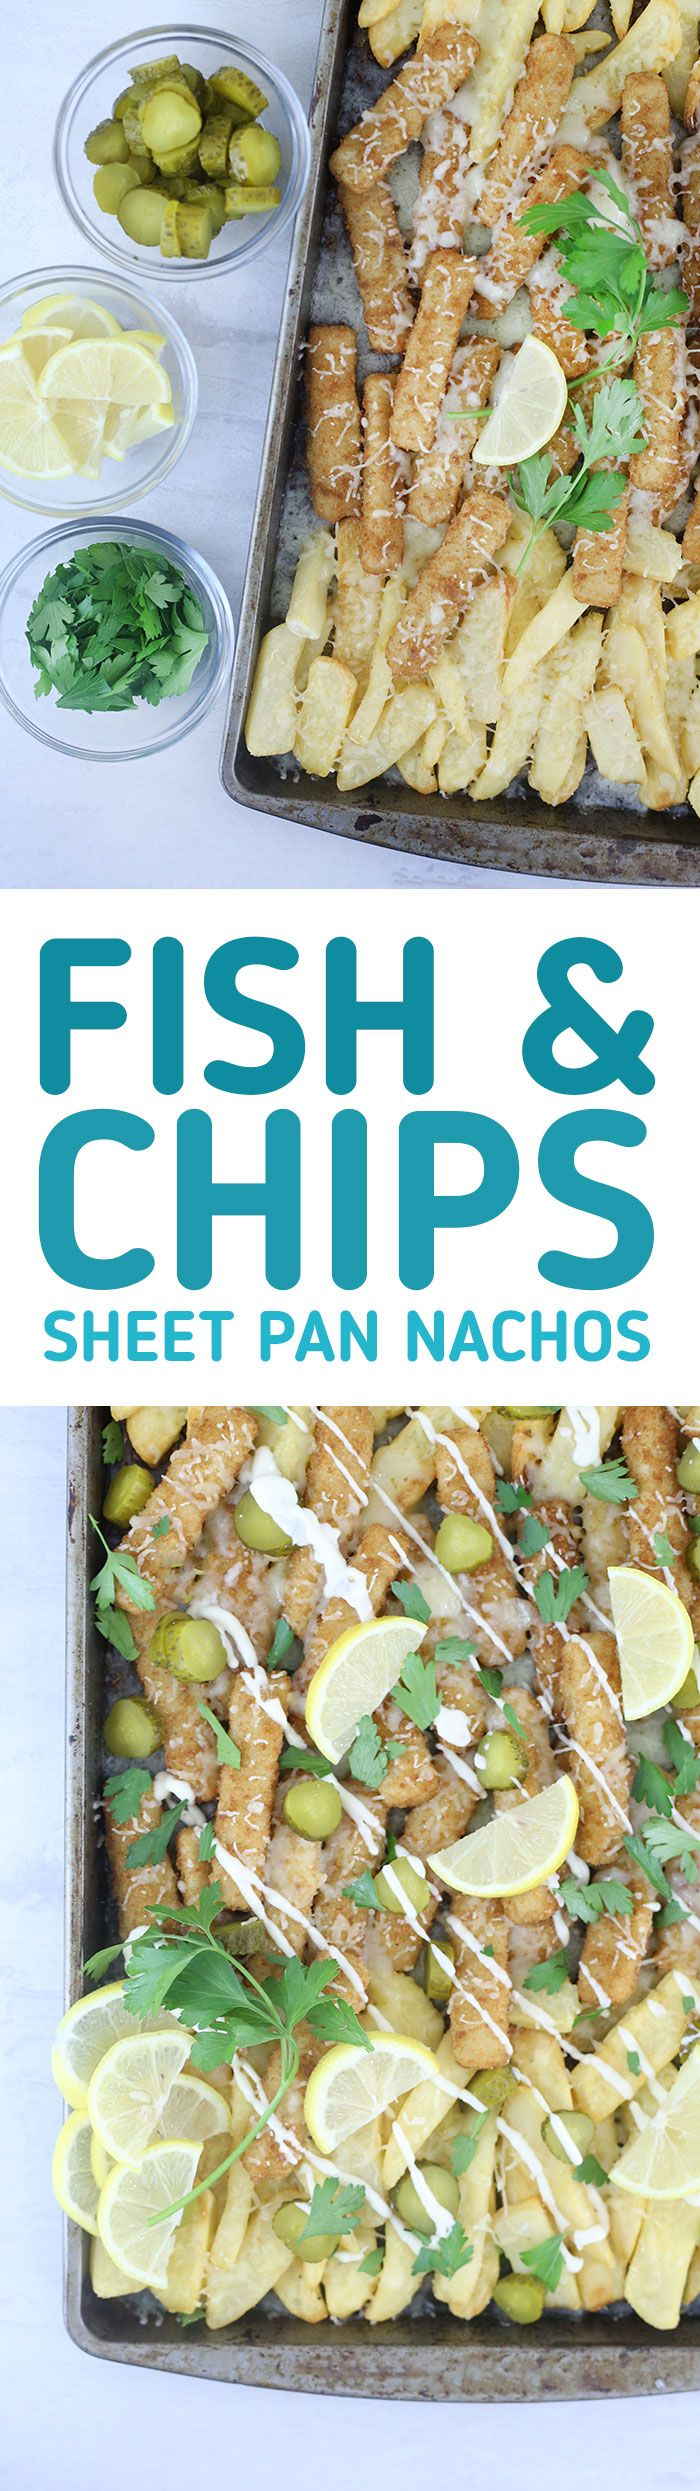 Fish & Chips Sheet Pan Nachos. Yummy flavor combo that you HAVE to try. Gorton's Fish Sticks make this recipe rock!  #ad